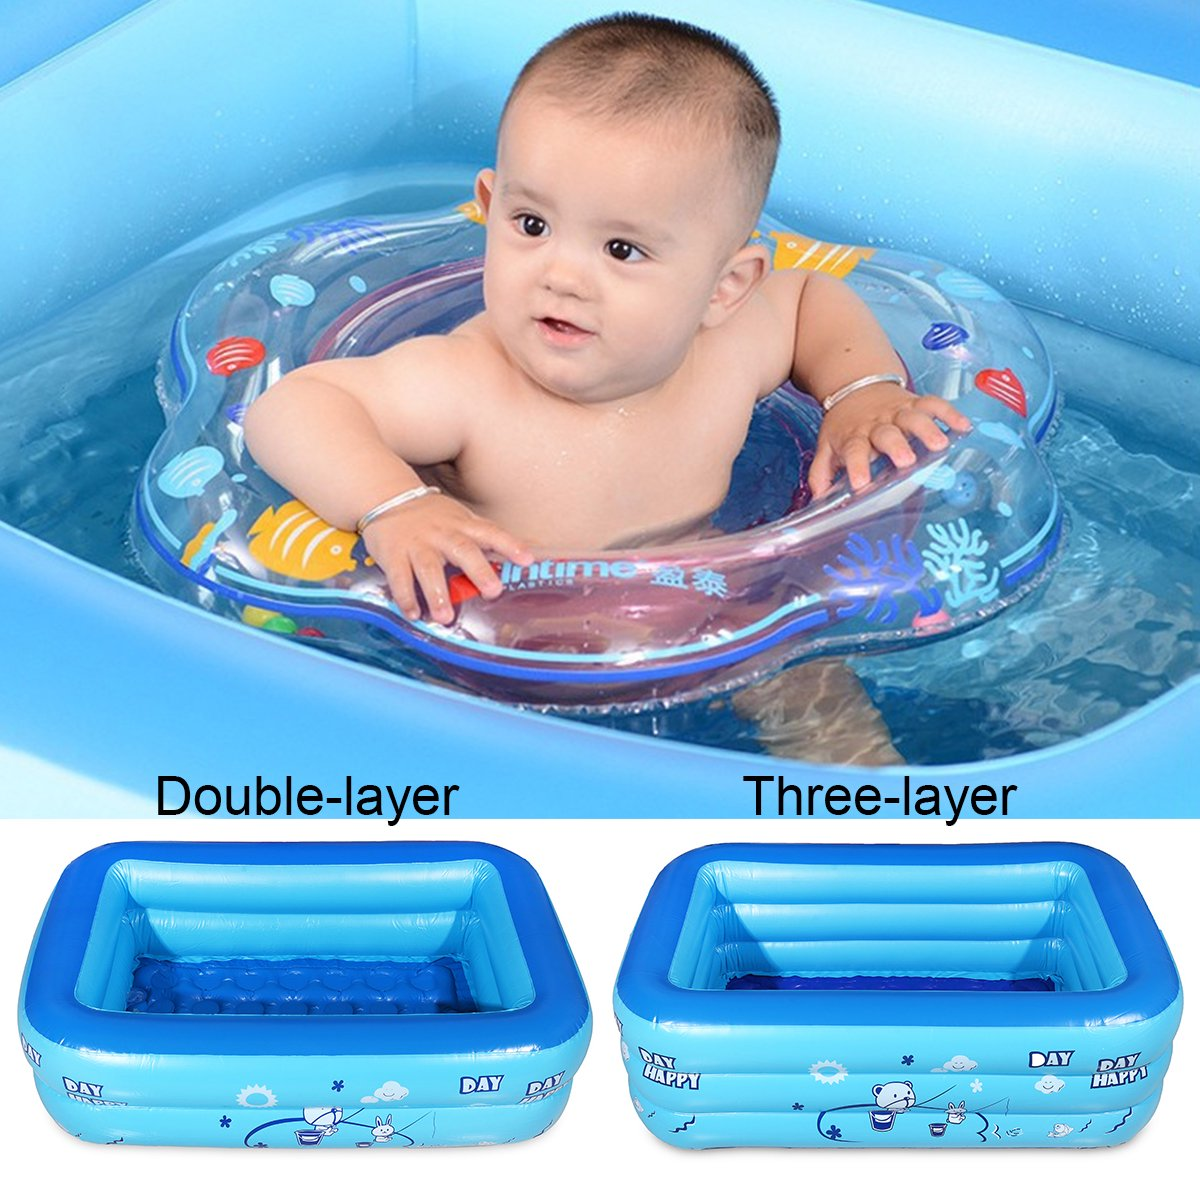 cd164a351736 Baby Inflatable Pool Children Kids Infant Anti-slip Baby Swimming Pool  Paddling Bathtub Water Play Bath Shower Pool Swim Training Tool Large  Capacity